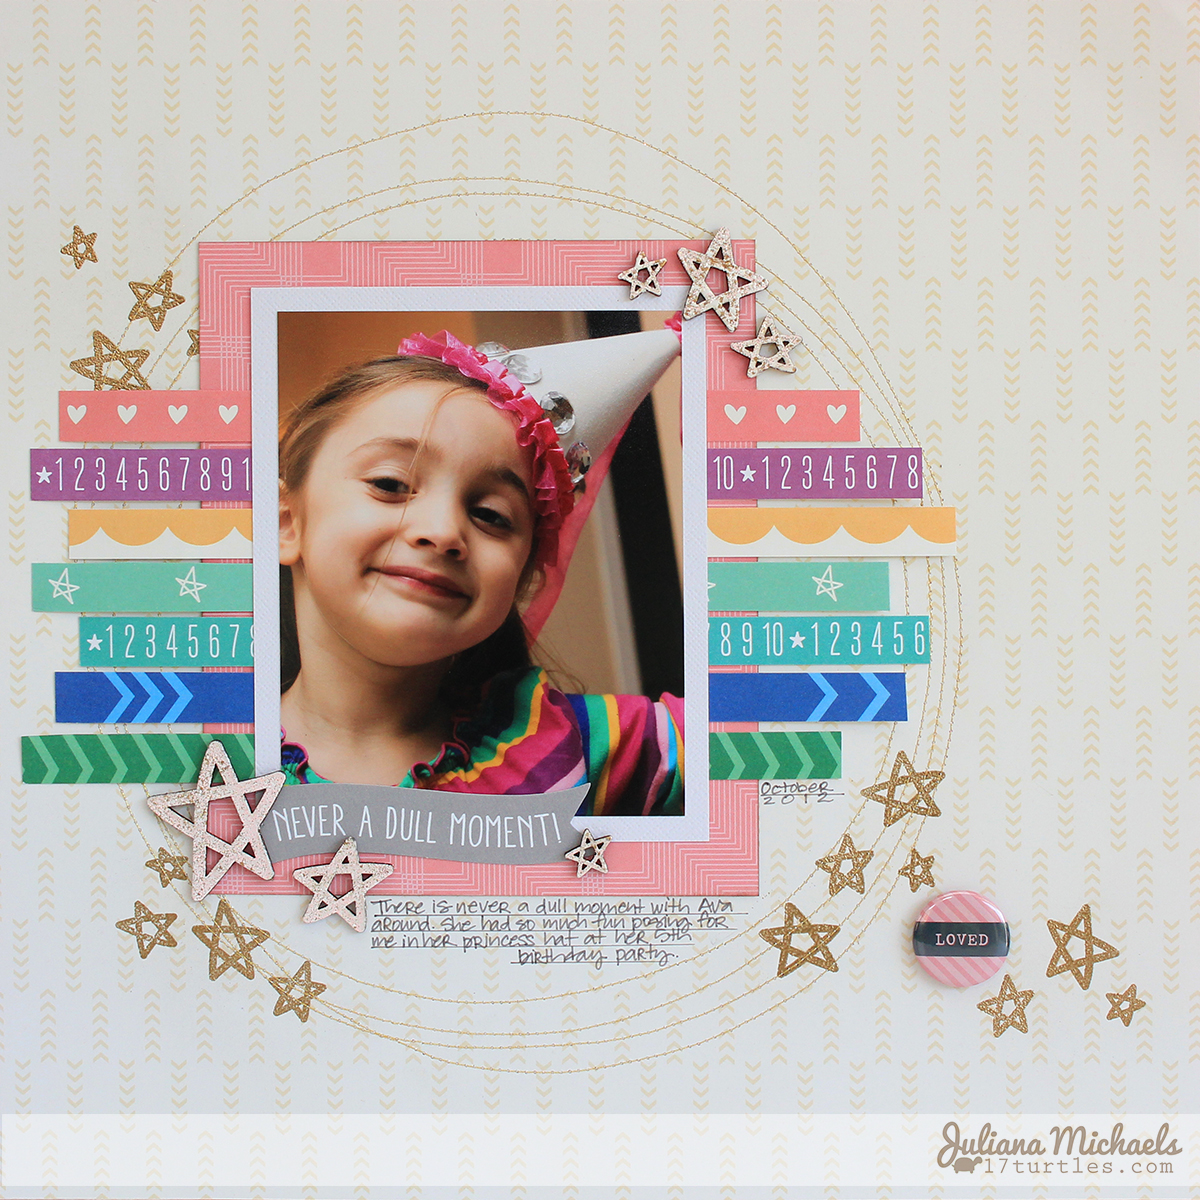 Never A Dully Moment Scrapbook Page Juliana Michaels for Elle's Studio #ellesstudio #julianamichaels #scrapbookpage